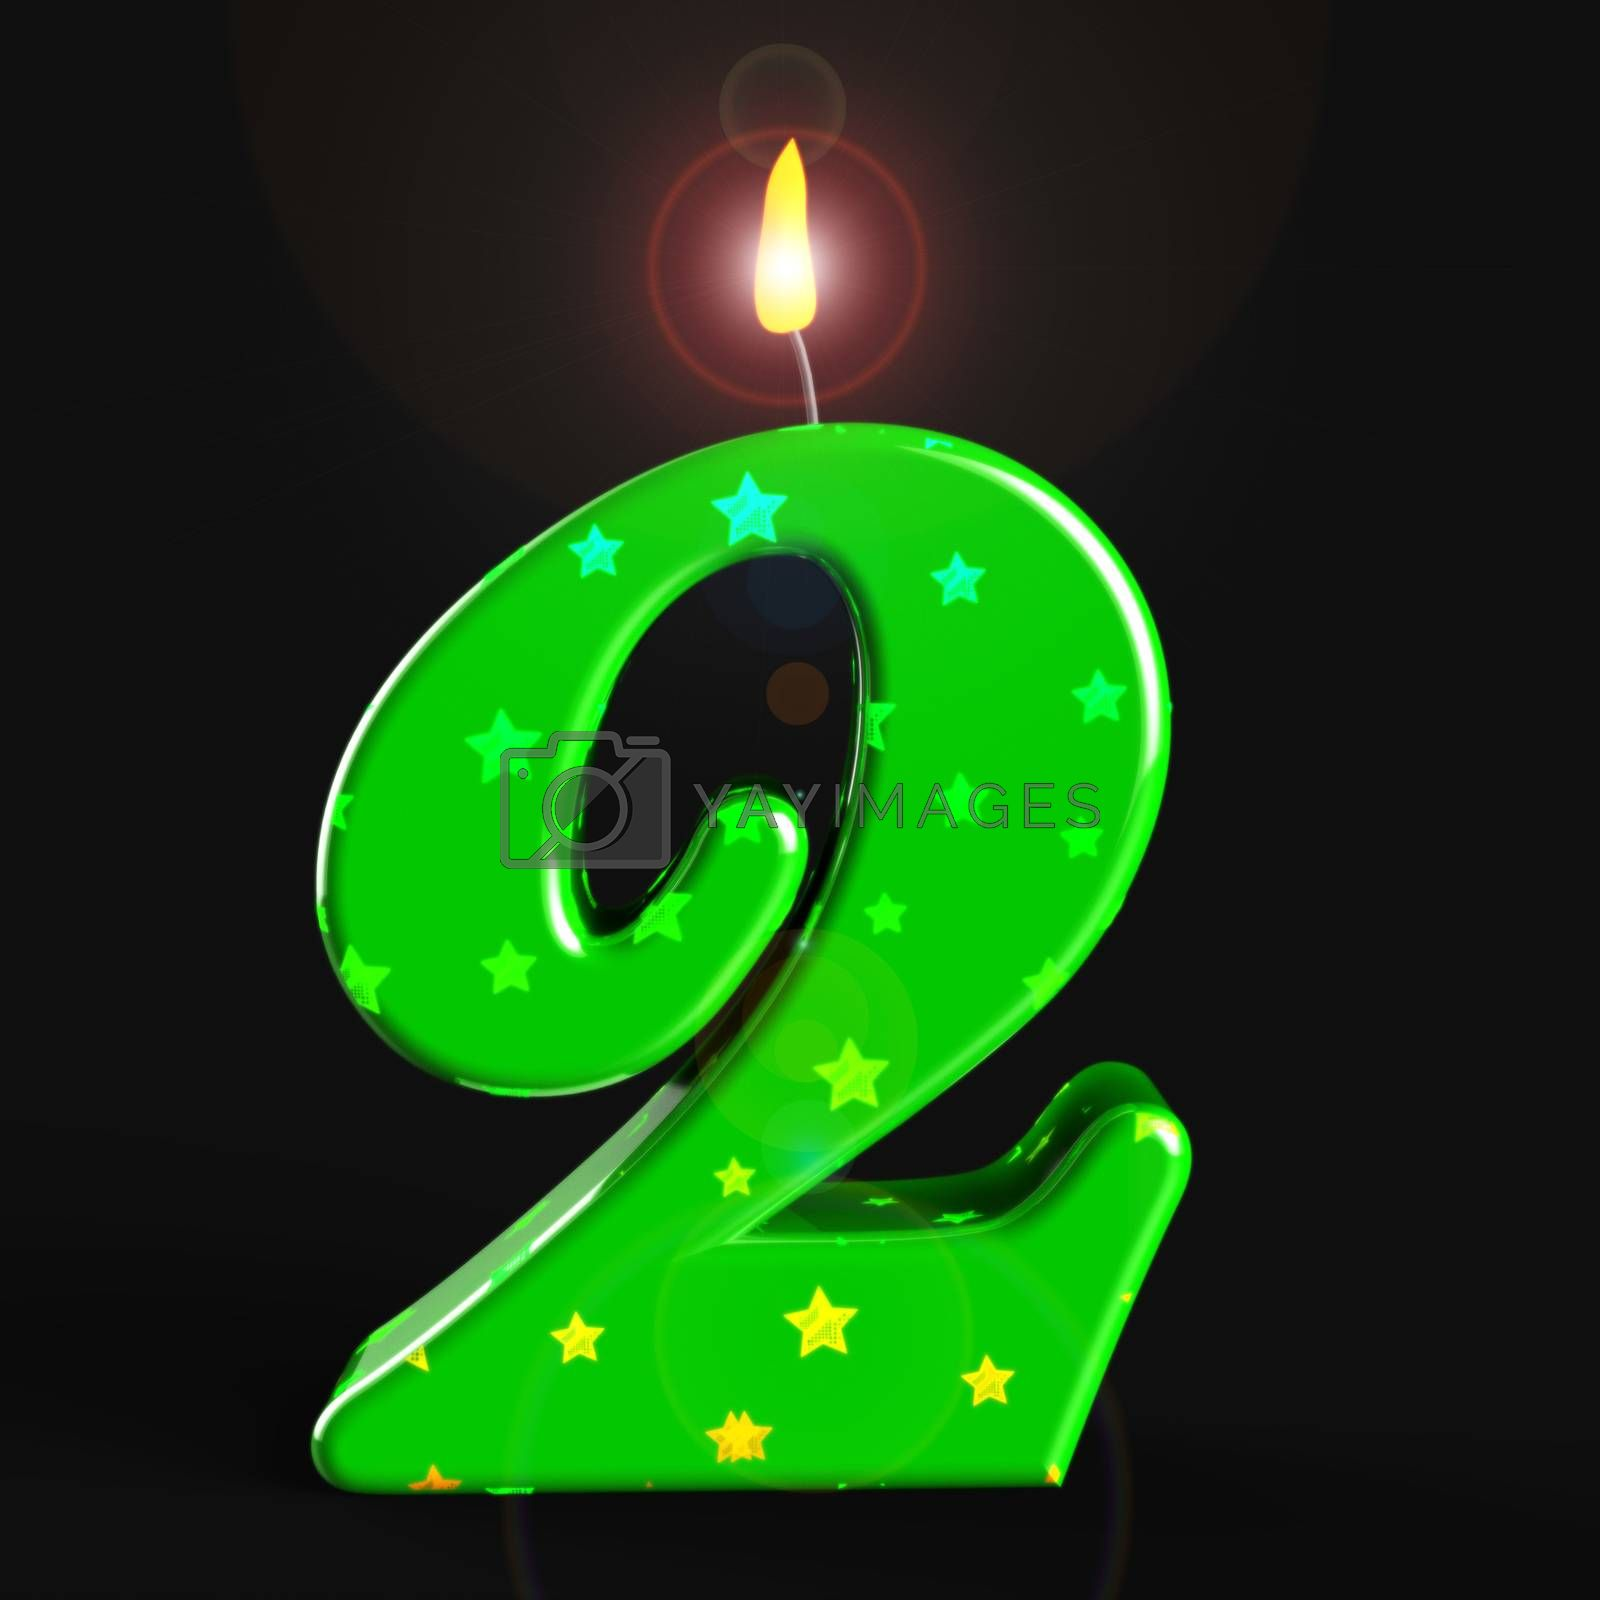 Second birthday celebration candle shows a happy event. Celebrating 2nd with a joyful childs party - 3d illustration